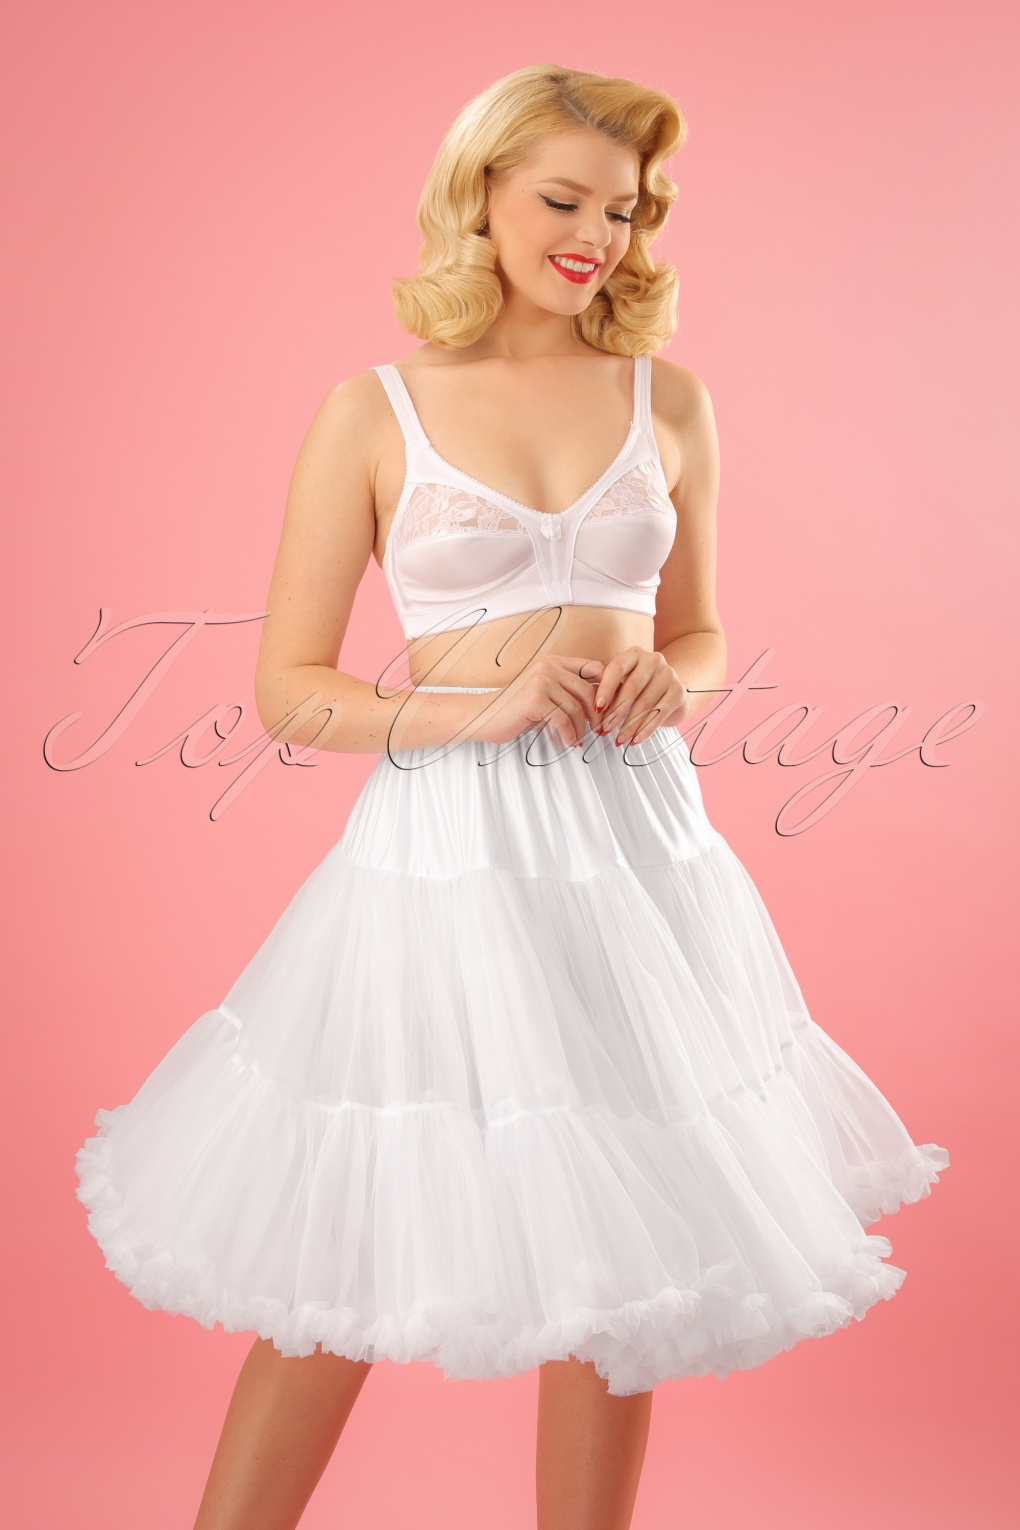 Crinoline Skirt | Crinoline Slips | Crinoline Petticoat 50s Lola Lifeforms Petticoat in White £44.07 AT vintagedancer.com